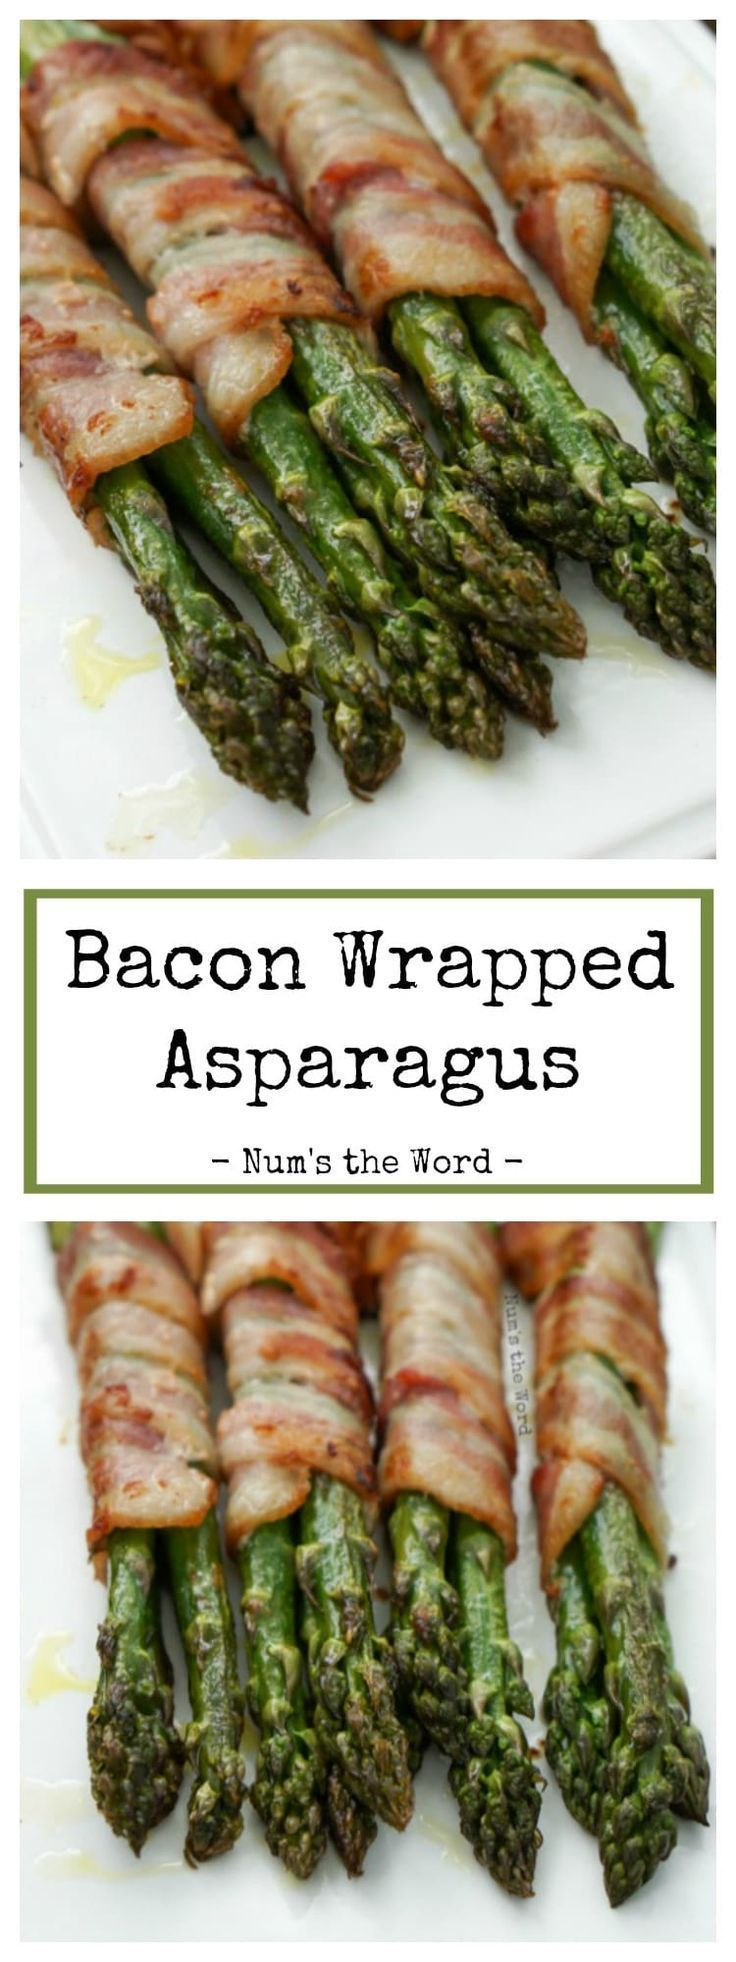 We love this Grilled Bacon Wrapped Asparagus! Perfect for grilling out with friends or when company is coming to dinner! You can grill or bake this asparagus, both taste great! An easy flavorful side dish even non asparagus lovers will like! -